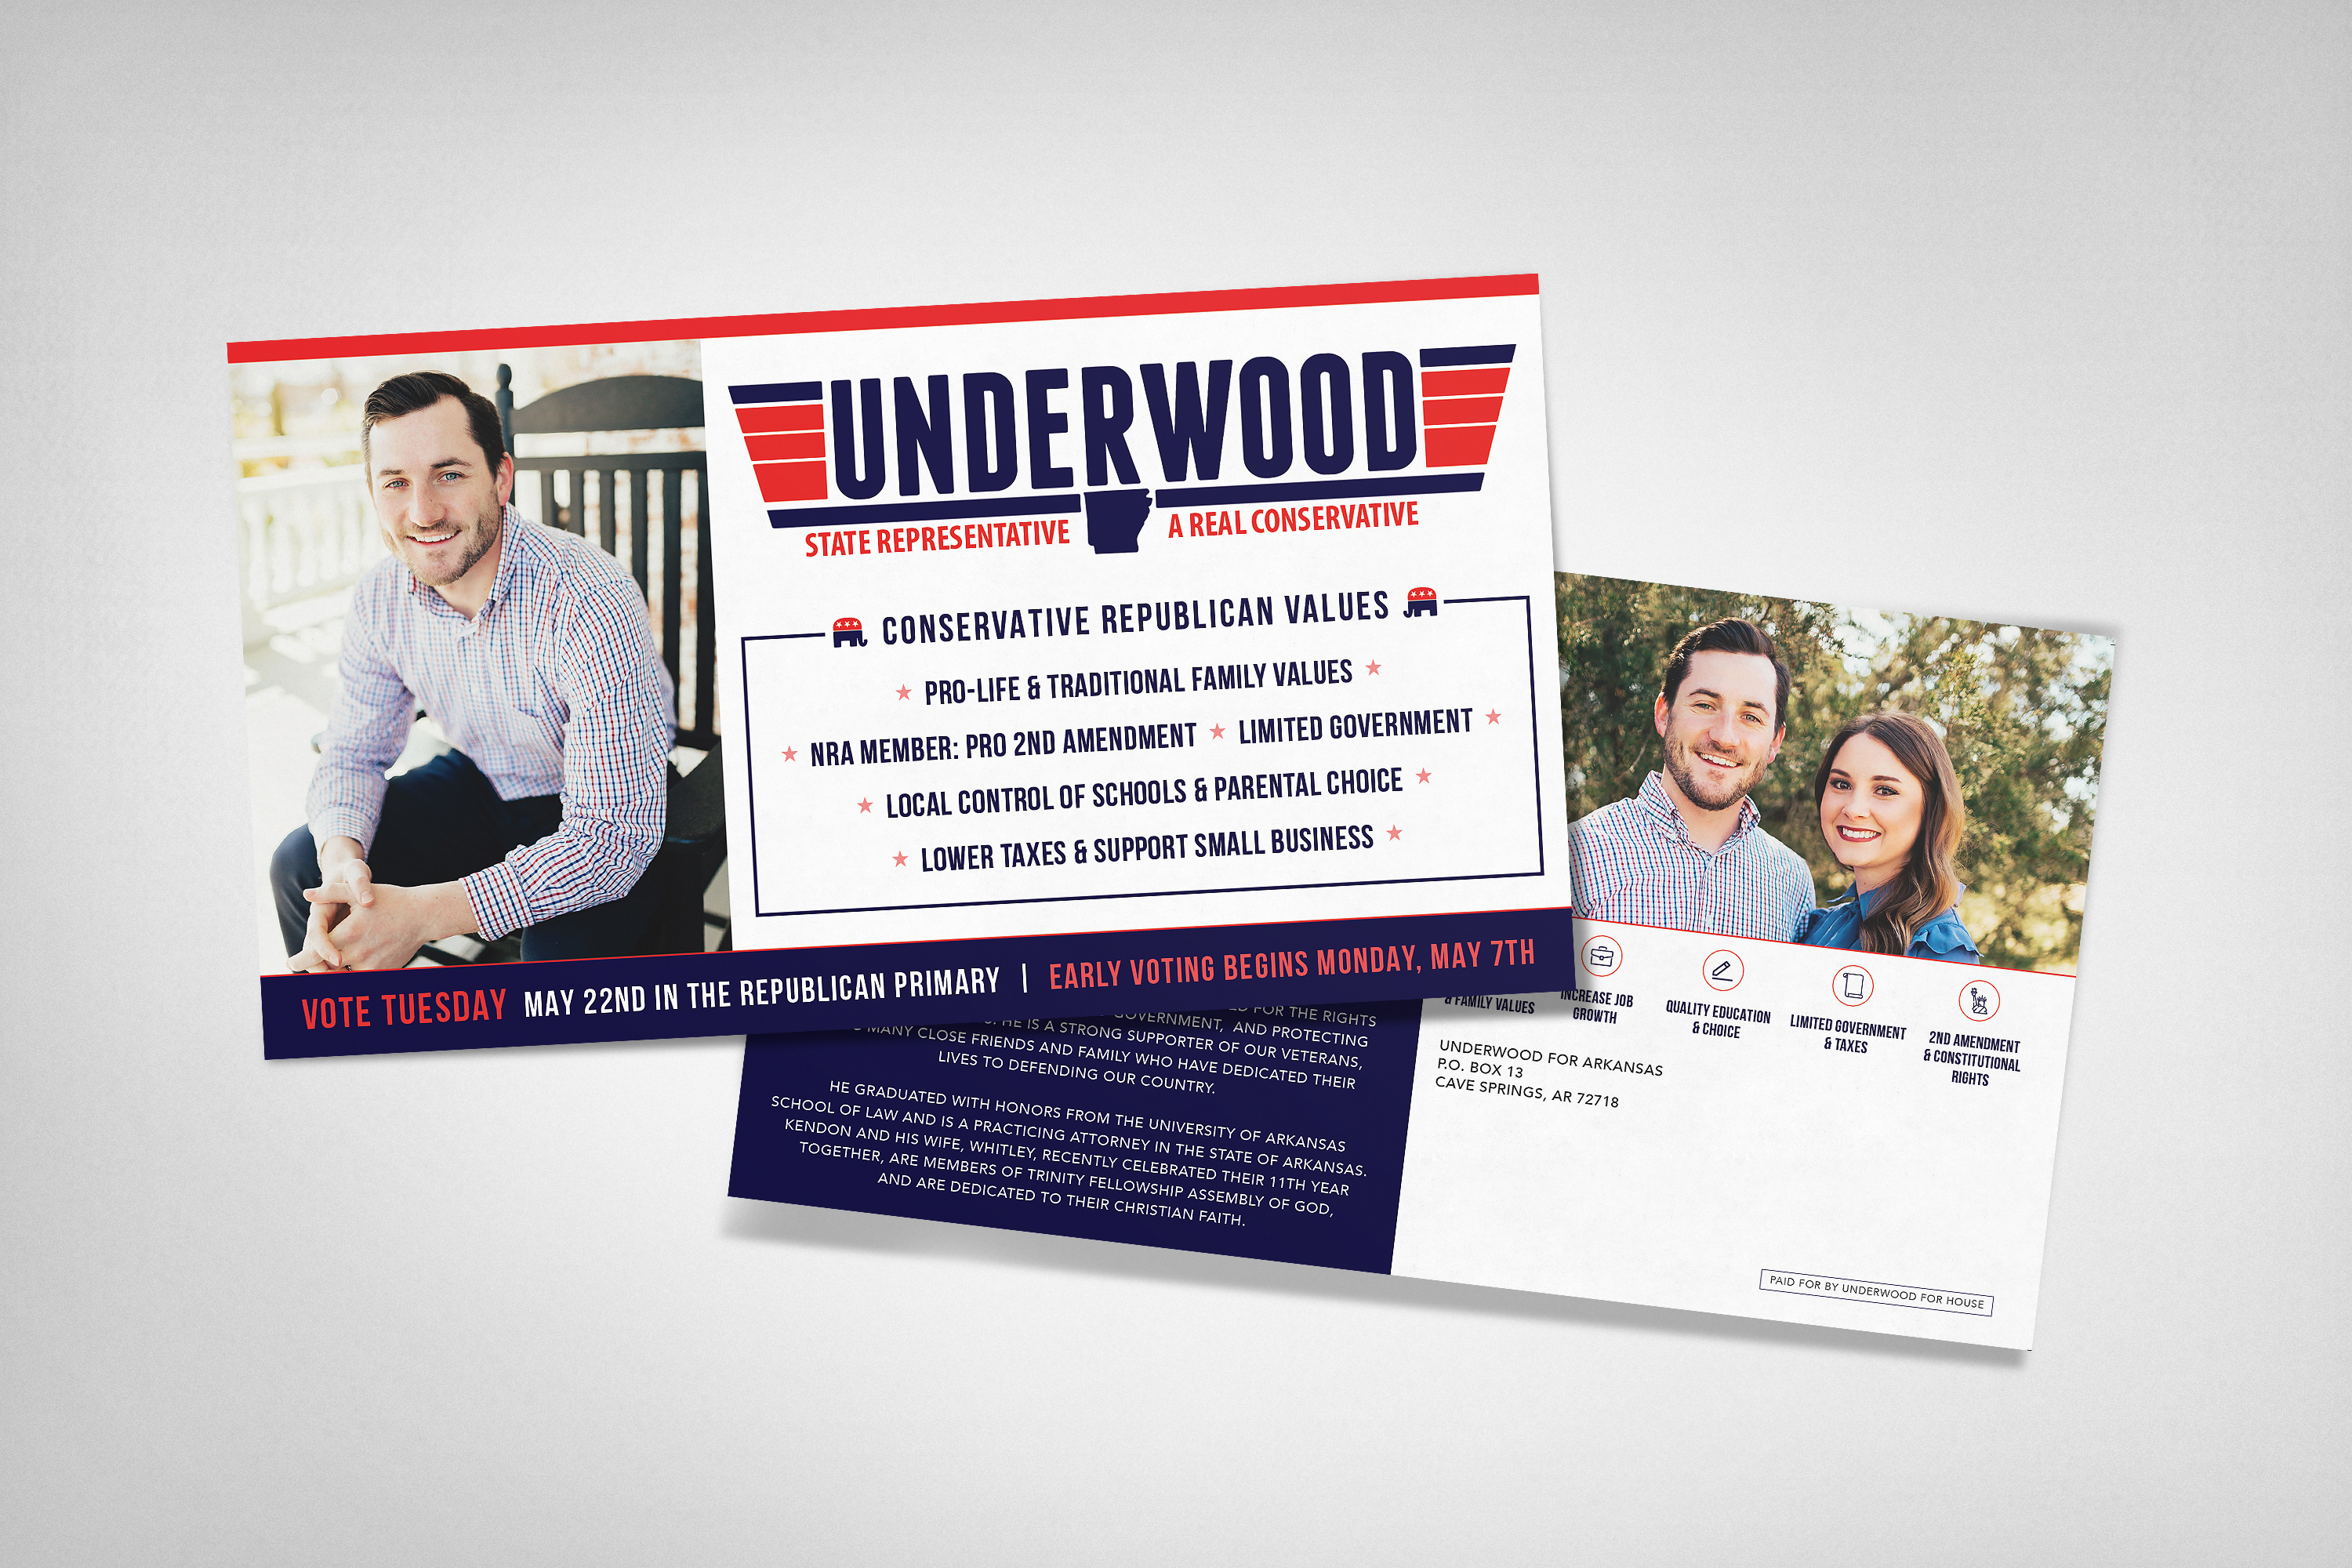 Underwood For Arkansas